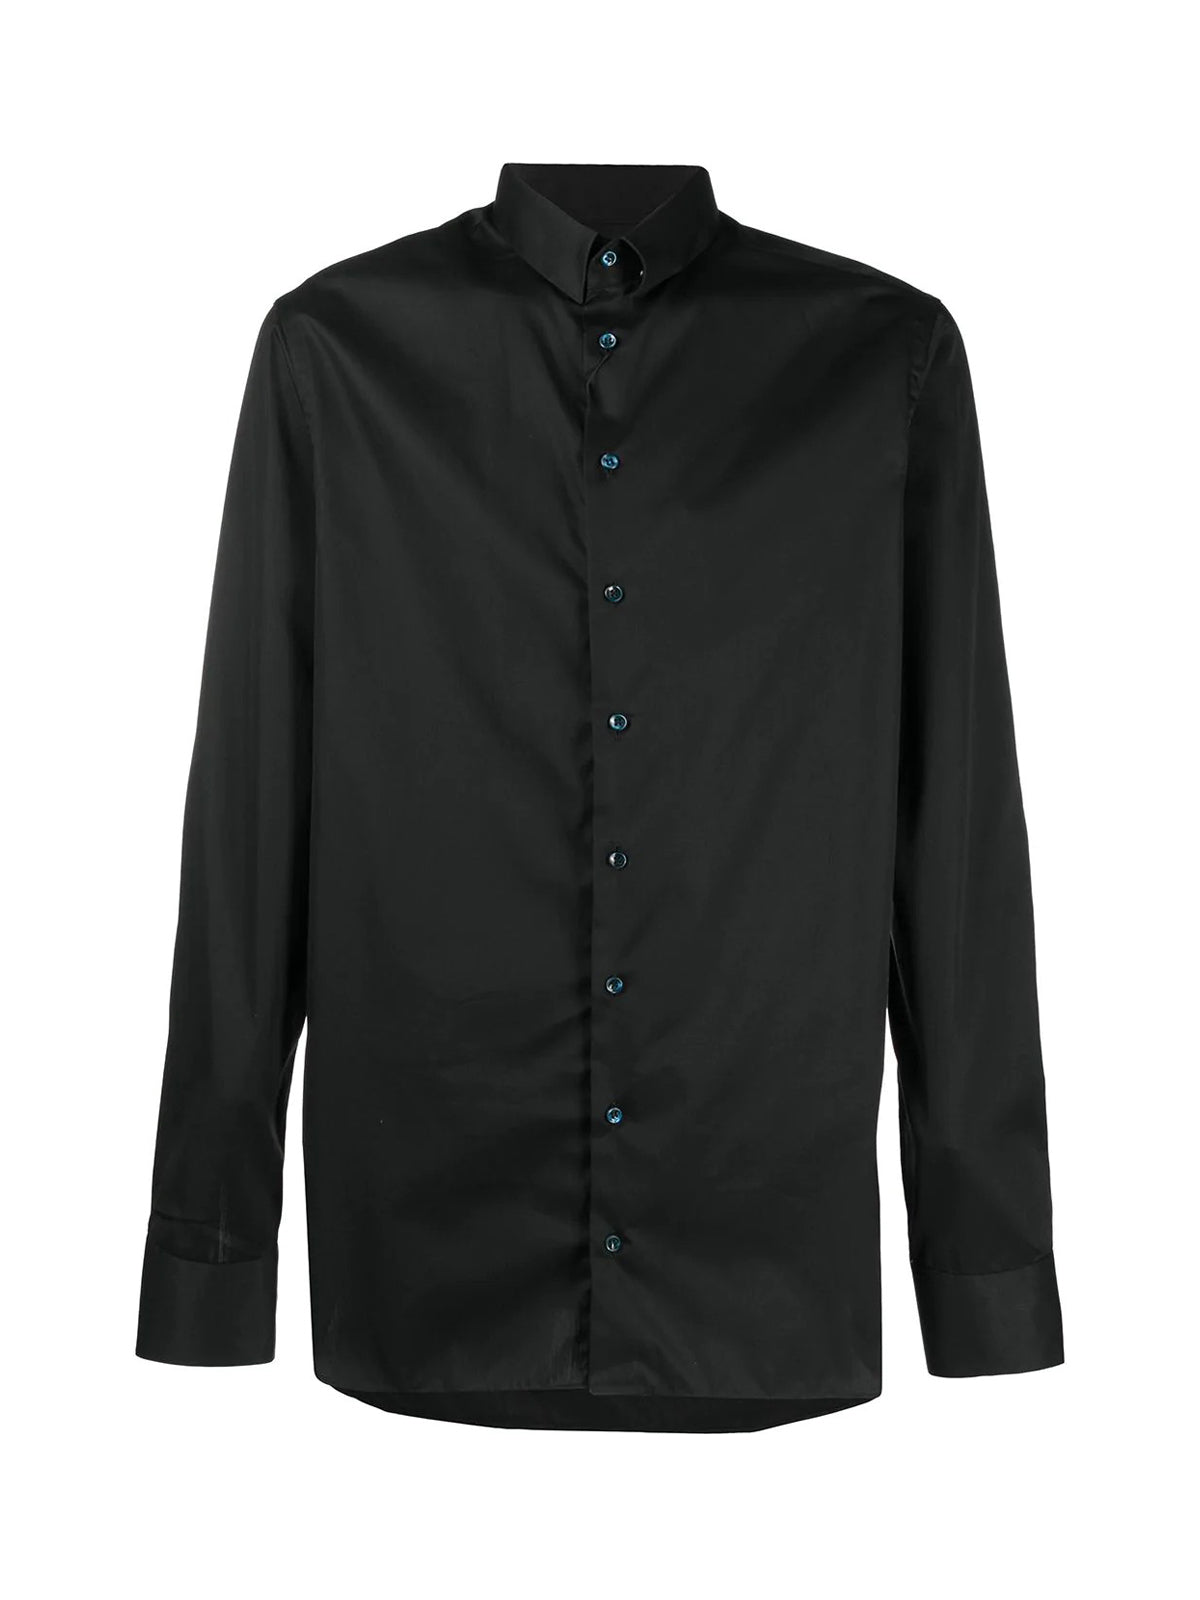 Shirt with contrasting buttons